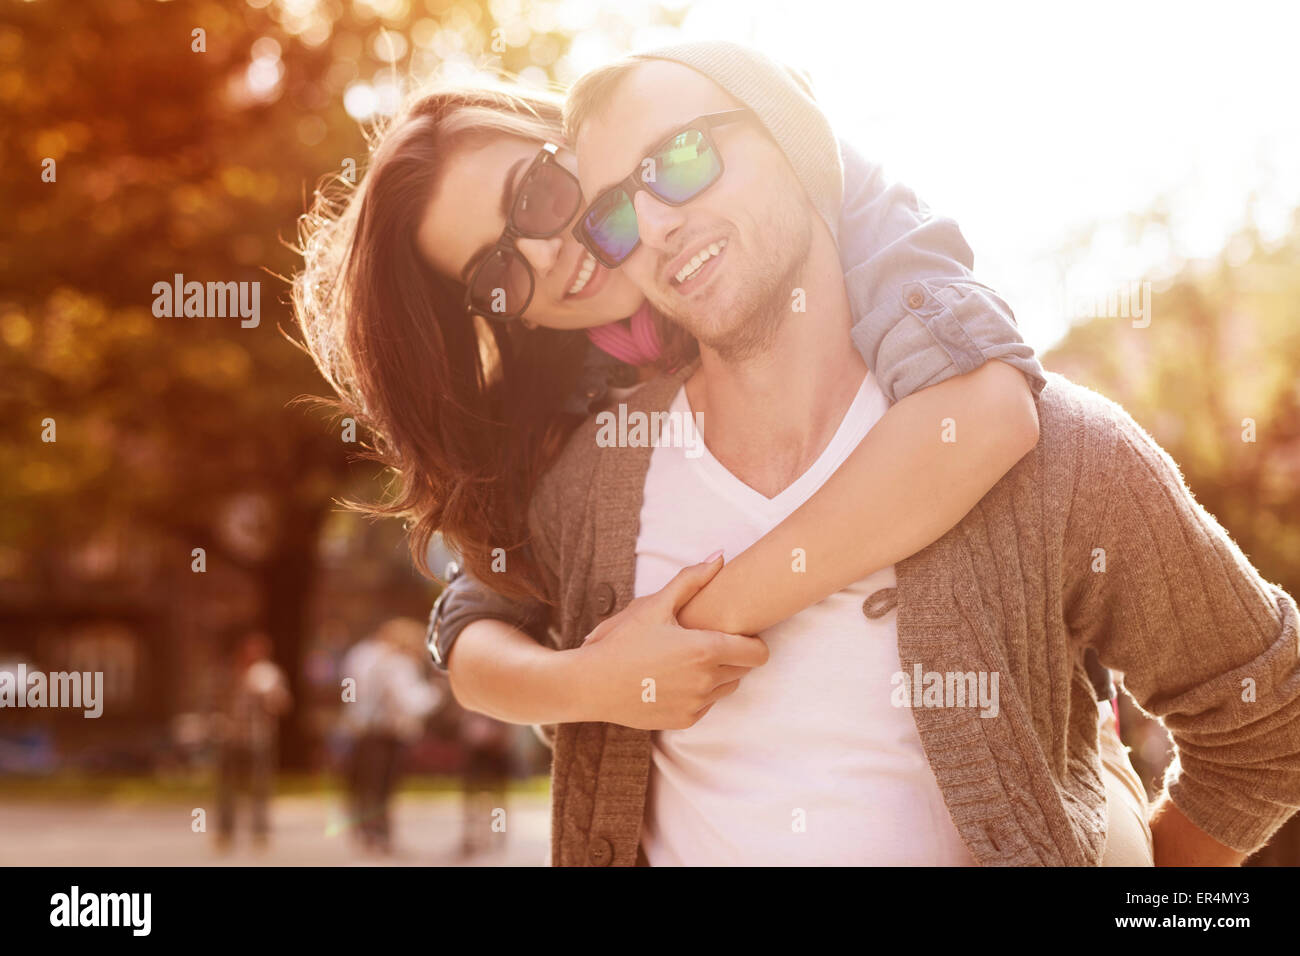 Young couple have fun in sunny day. Krakow, Poland Stock Photo